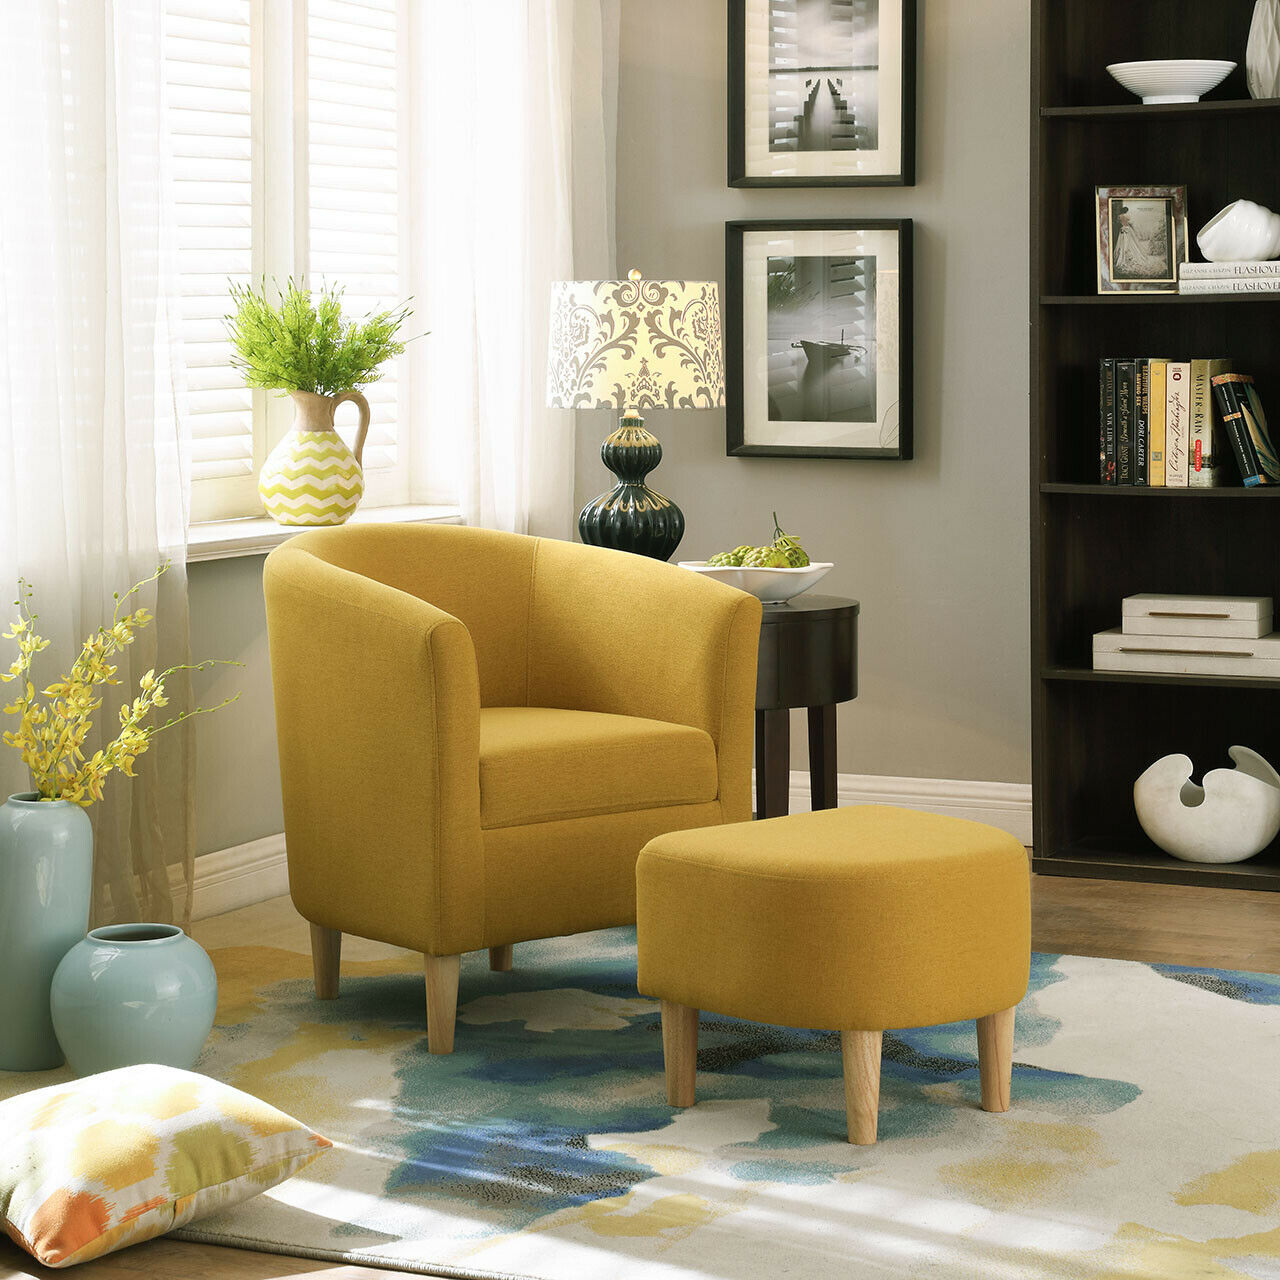 Yellow Accent Chair W/ Ottoman Round Arms Curved Back Upholstered Single Sofa